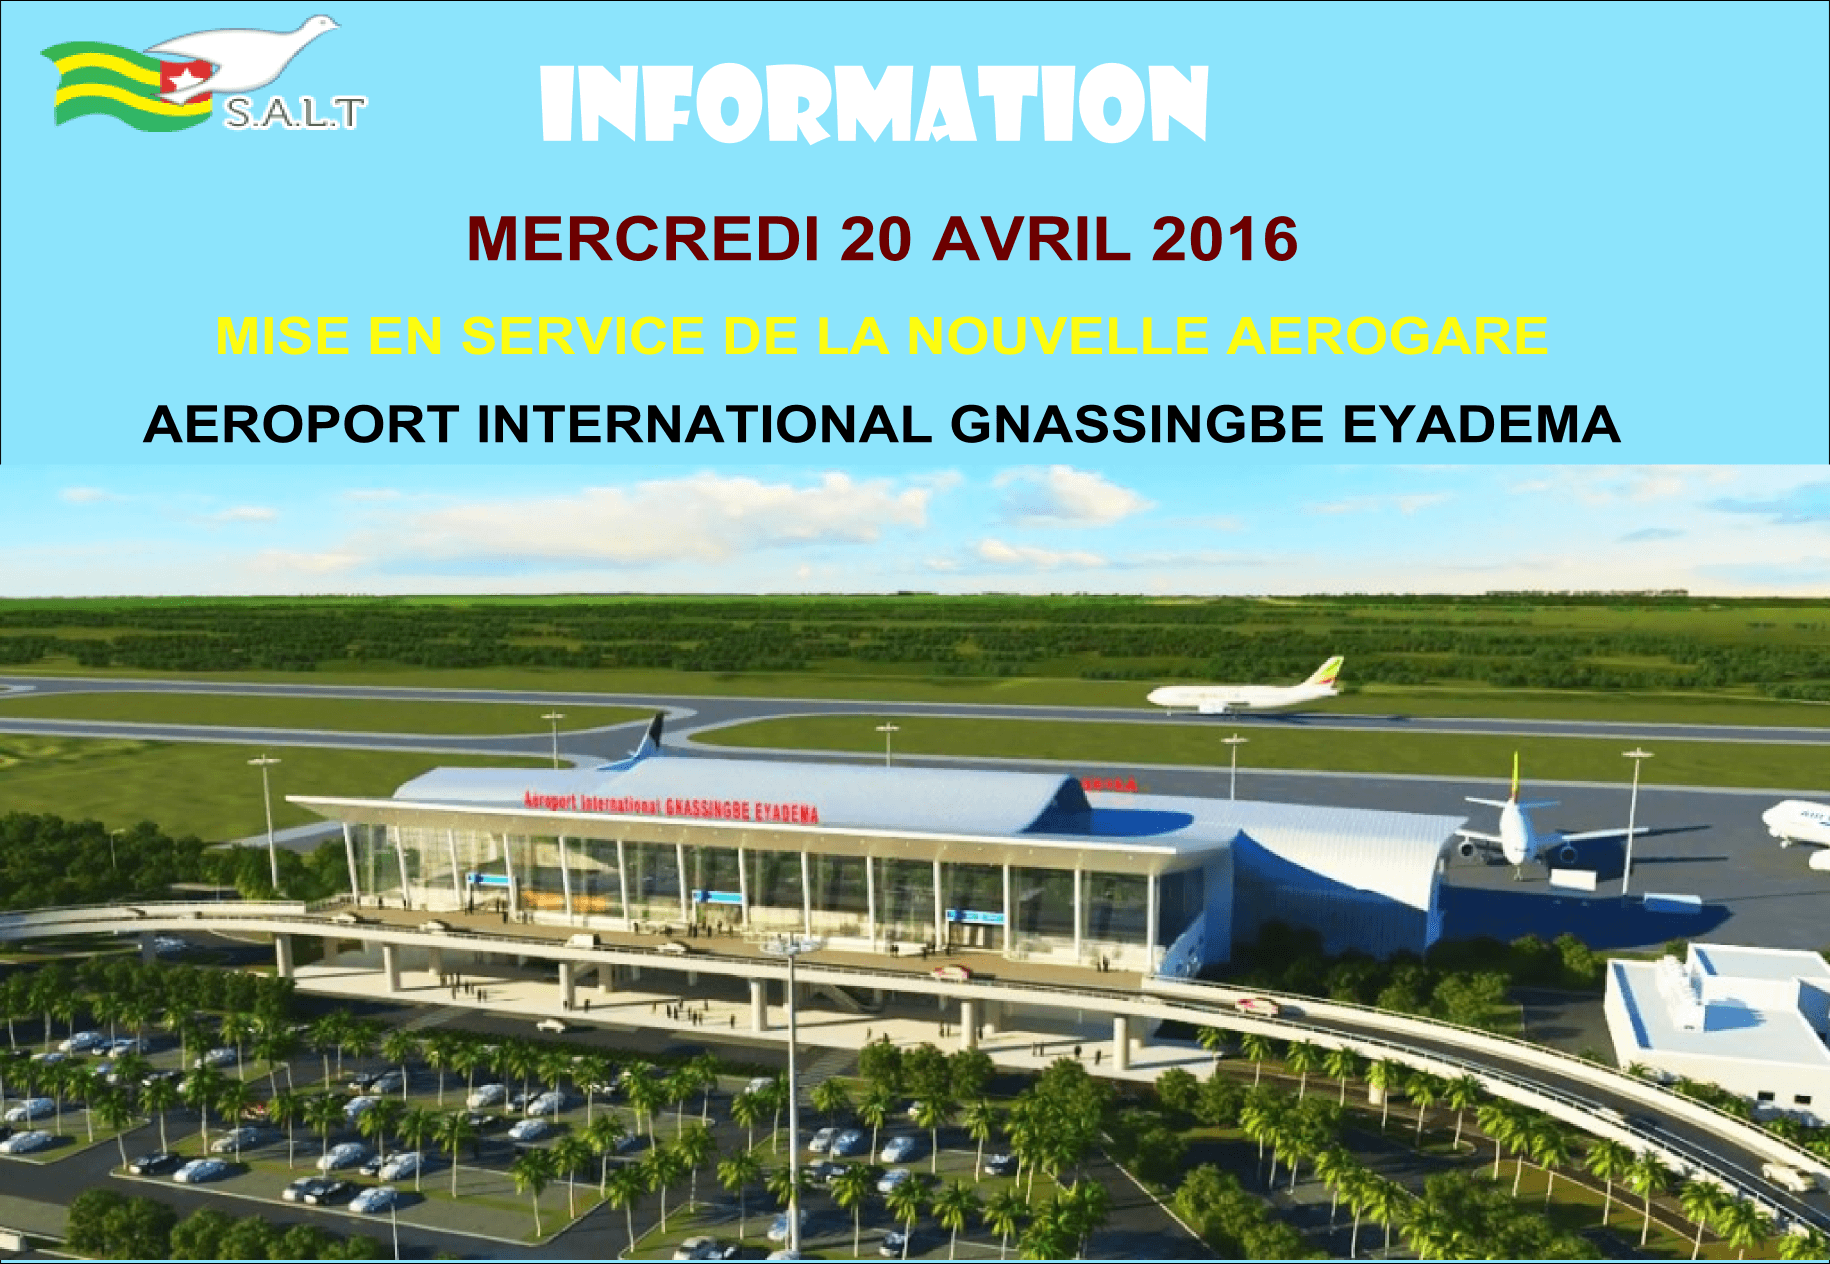 L'AEROPORT INTERNATIONAL GNASSINGBE EYADEMA (AIGE) EN PHASE DE BASCULEMENT DES ACTIVITES